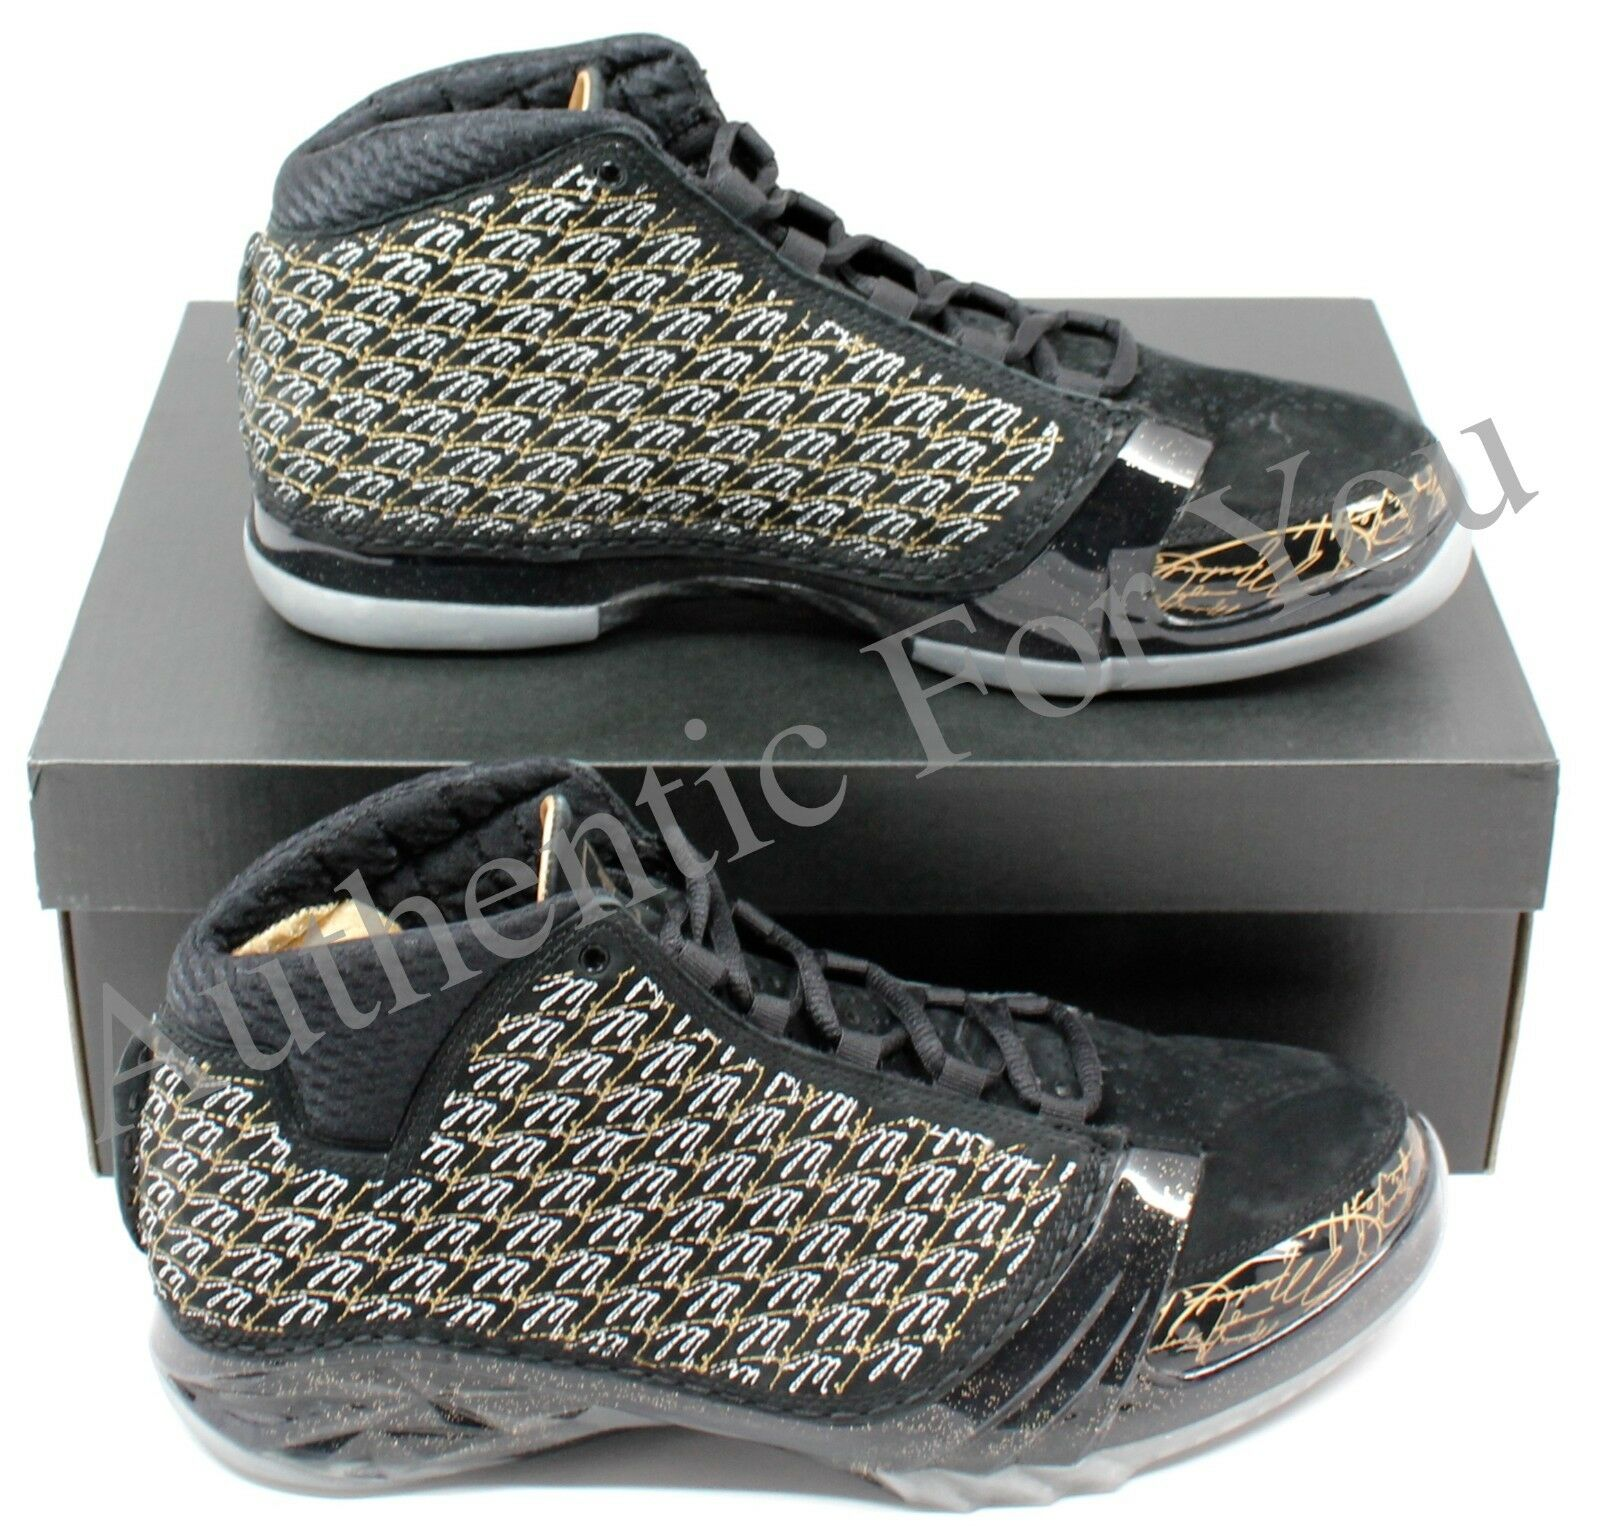 NEW Nike Air Jordan Retro XX3 23 Trophy Room Black And gold Limited Edition 5000